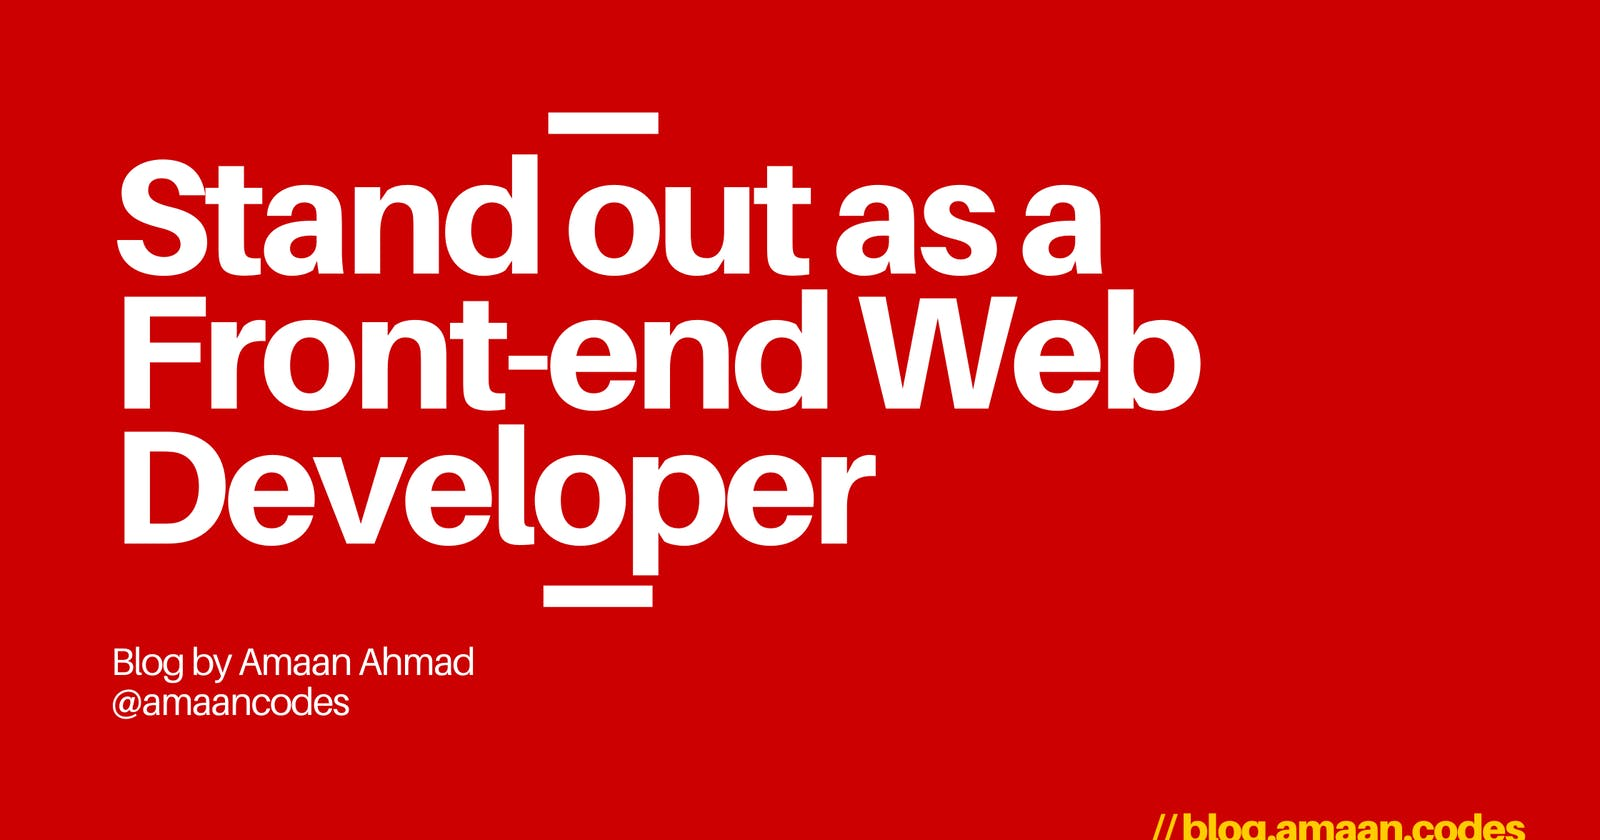 Guide to stand out as a Front-end Web developer seeking their first job!